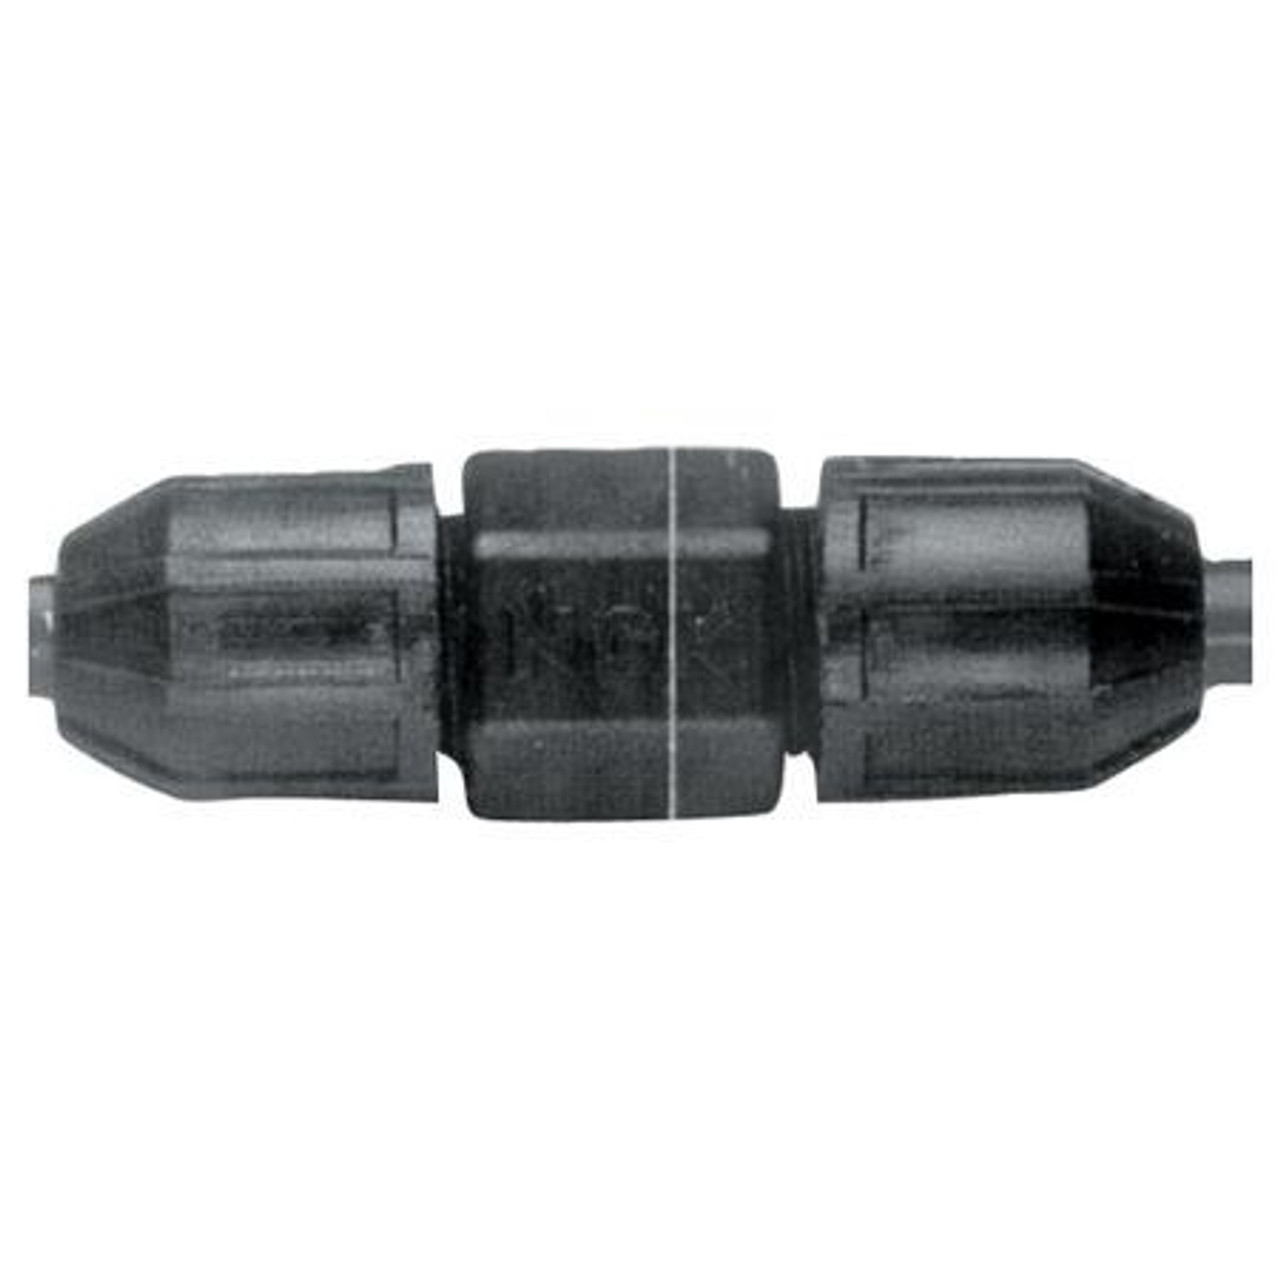 NGK Spark Plug Wire Connector